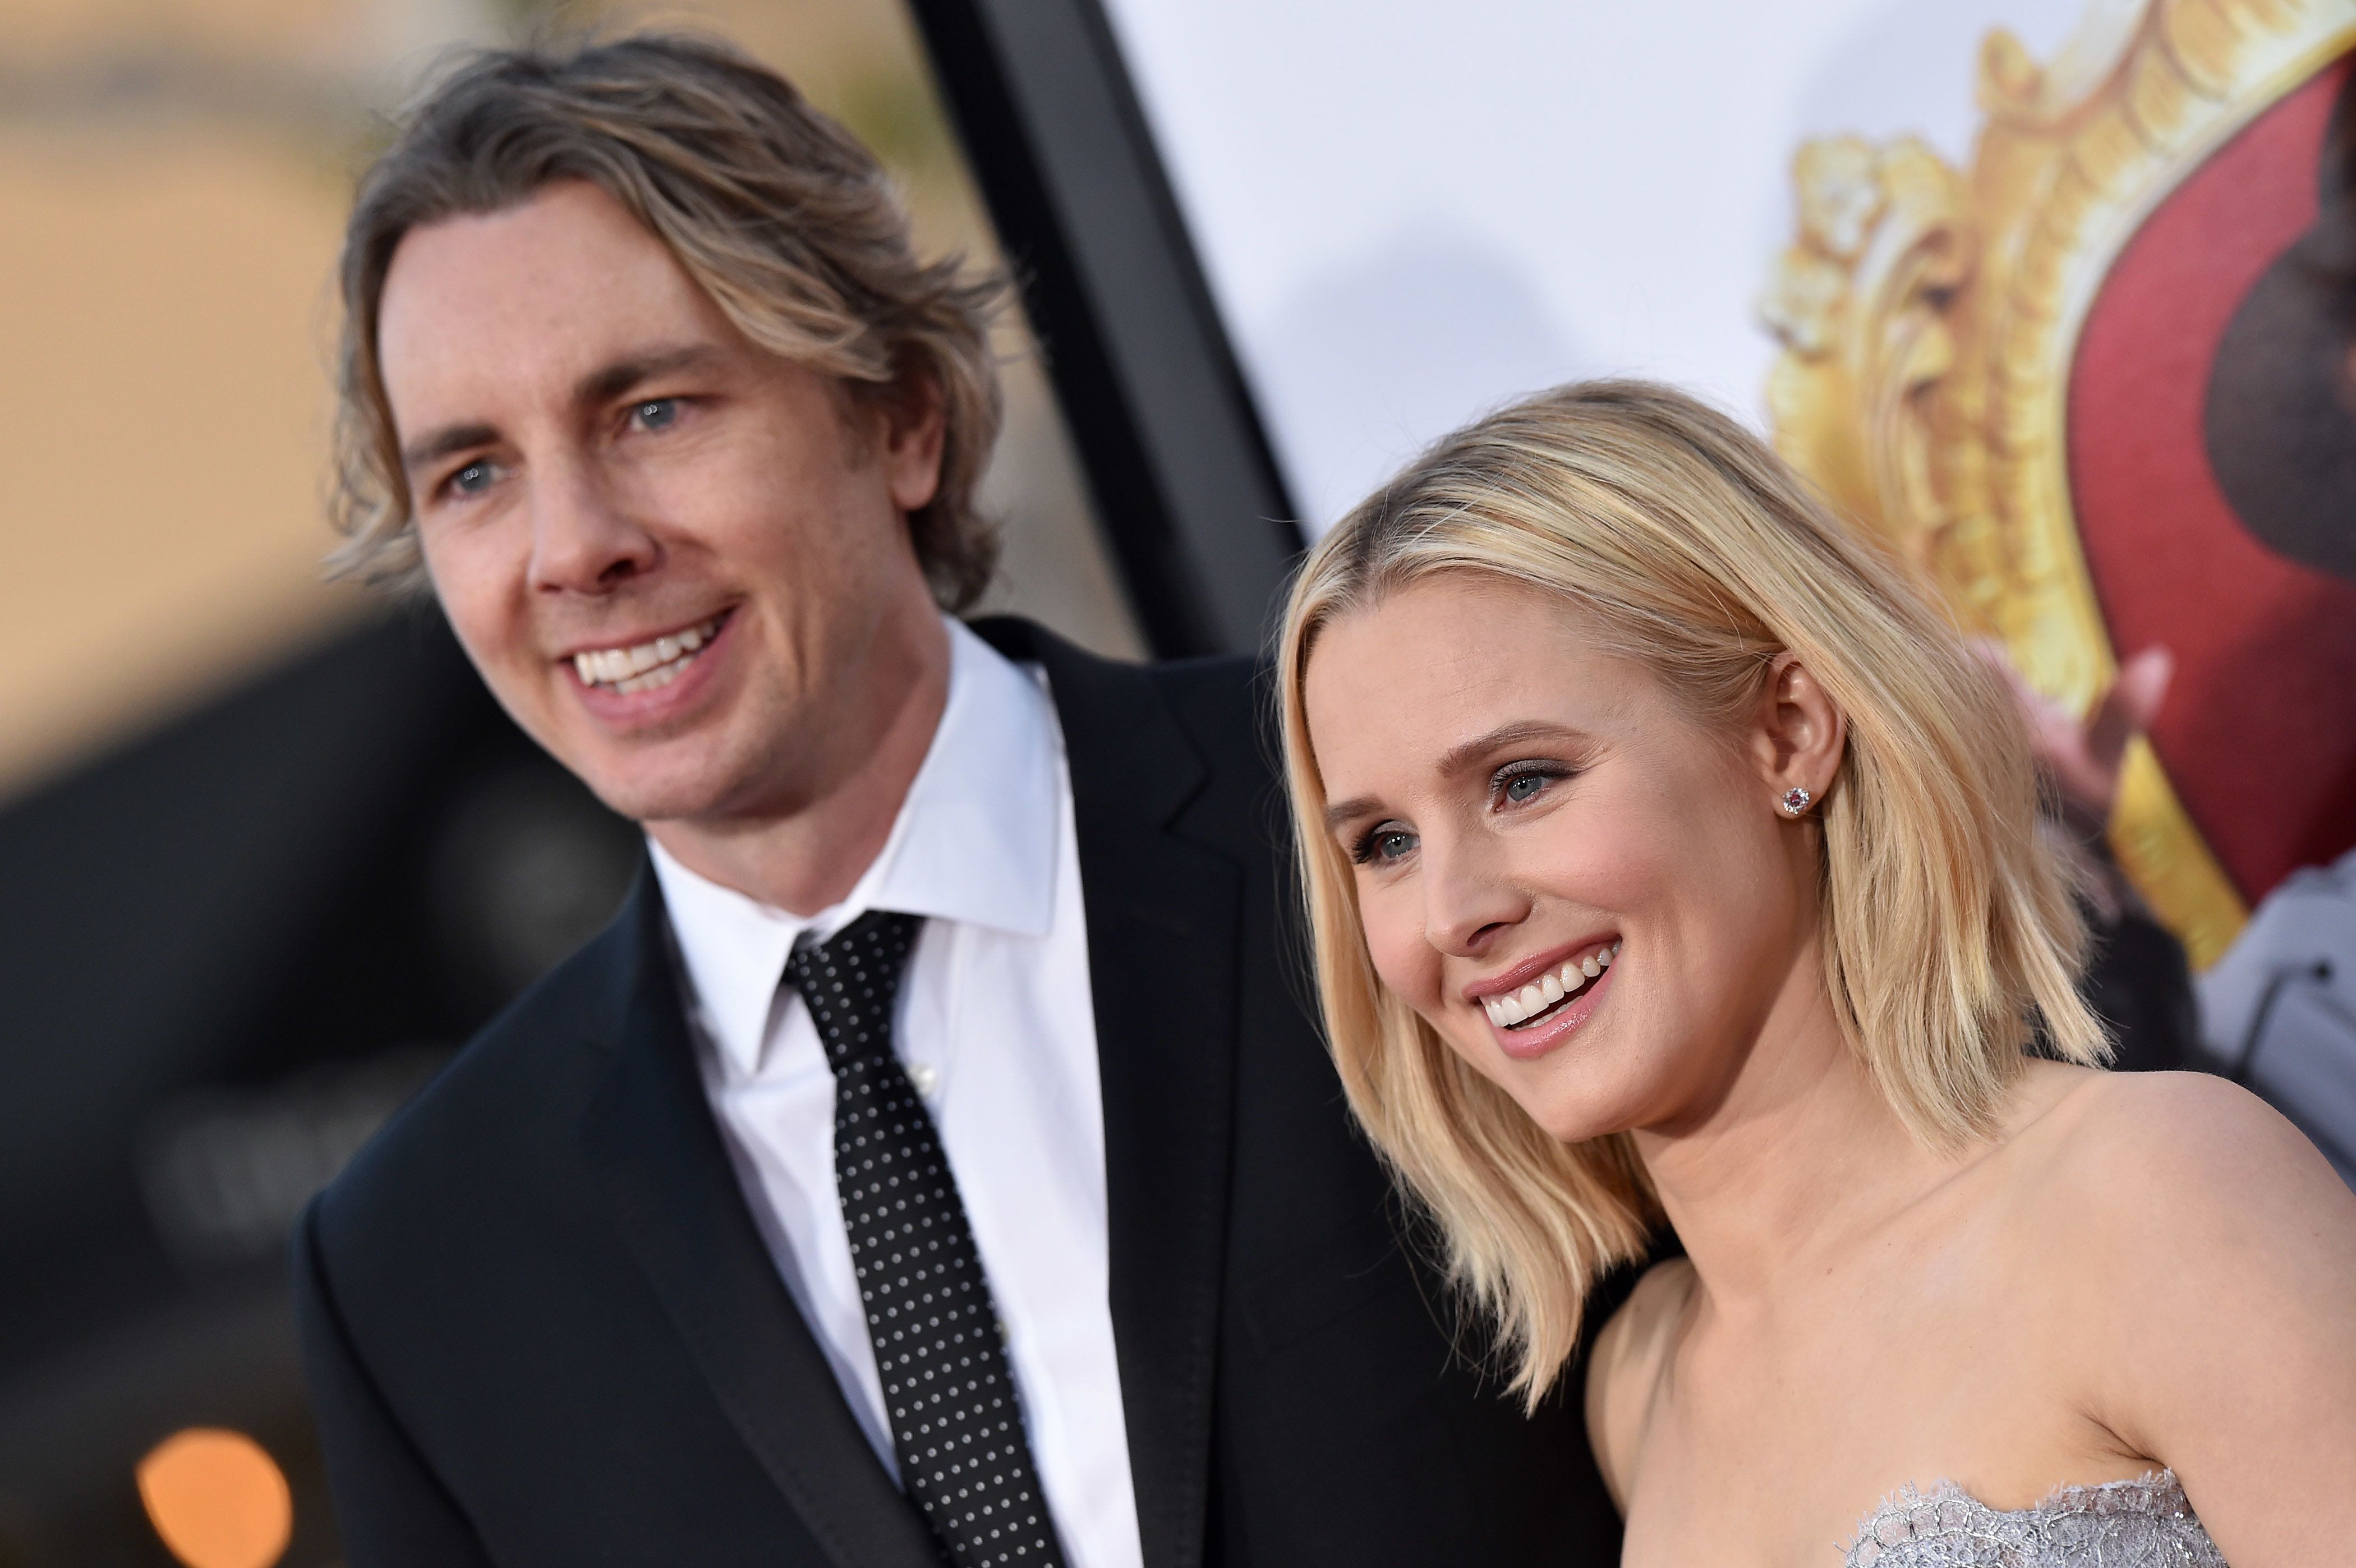 Dax Shepard and Kristen Bell in March 2016 in Westwood,